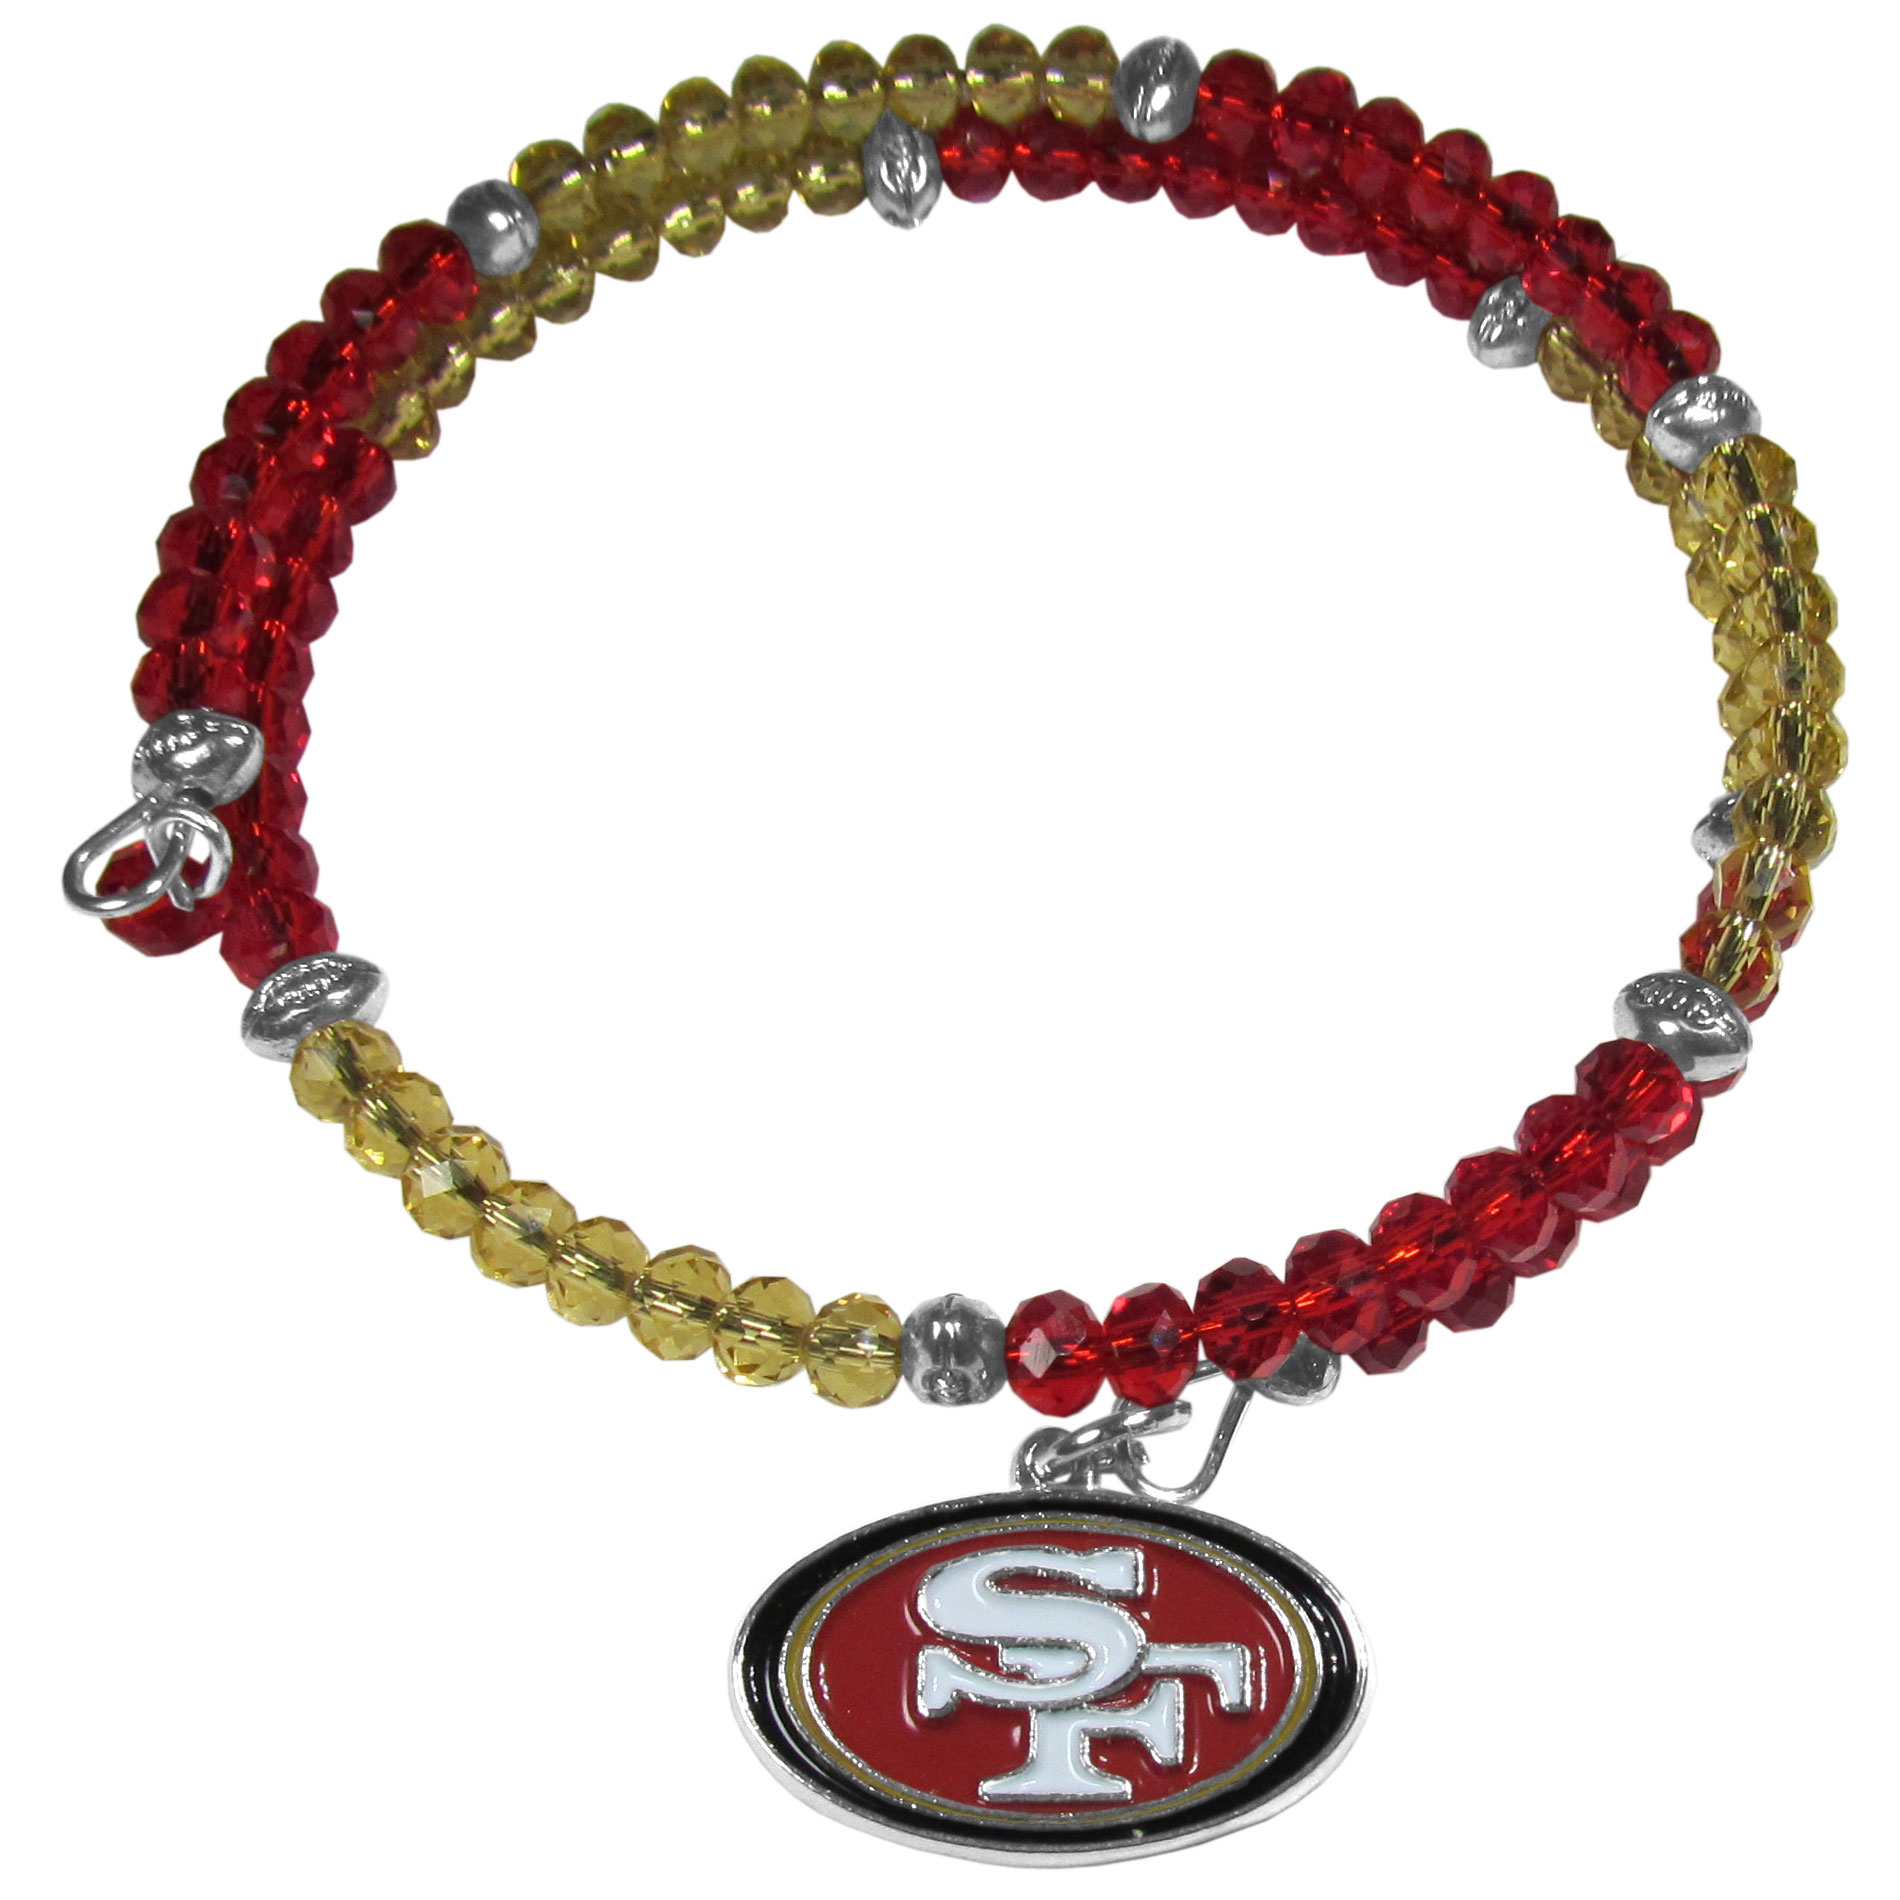 San Francisco 49ers Crystal Memory Wire Bracelet - Our San Francisco 49ers memory wire crystal bracelet is trendy way to show off your love of the game. The double wrap bracelet is completely covered in 4 mm crystals that are broken up with adorable football beads creating a designer look with a sporty twist. The bracelet features a fully cast, metal team charm that has expertly enameled team colors. This fashion jewelry piece is a must-have for the die-hard fan that chic look that can dress up any outfit.